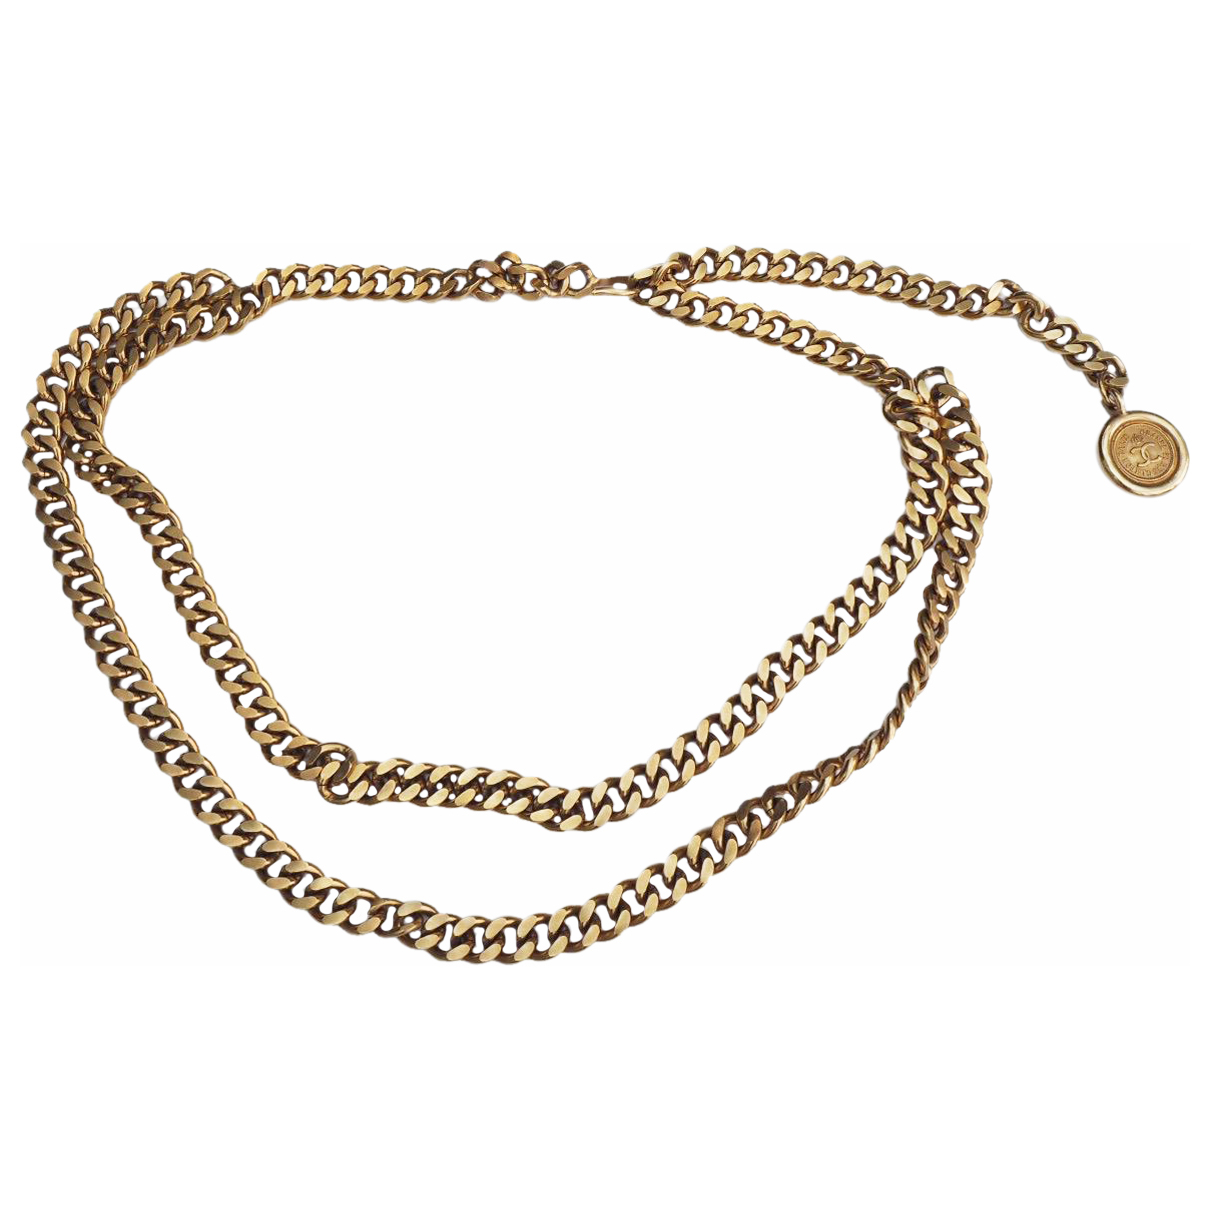 Chanel \N Gold Chain belt for Women 37 Inches